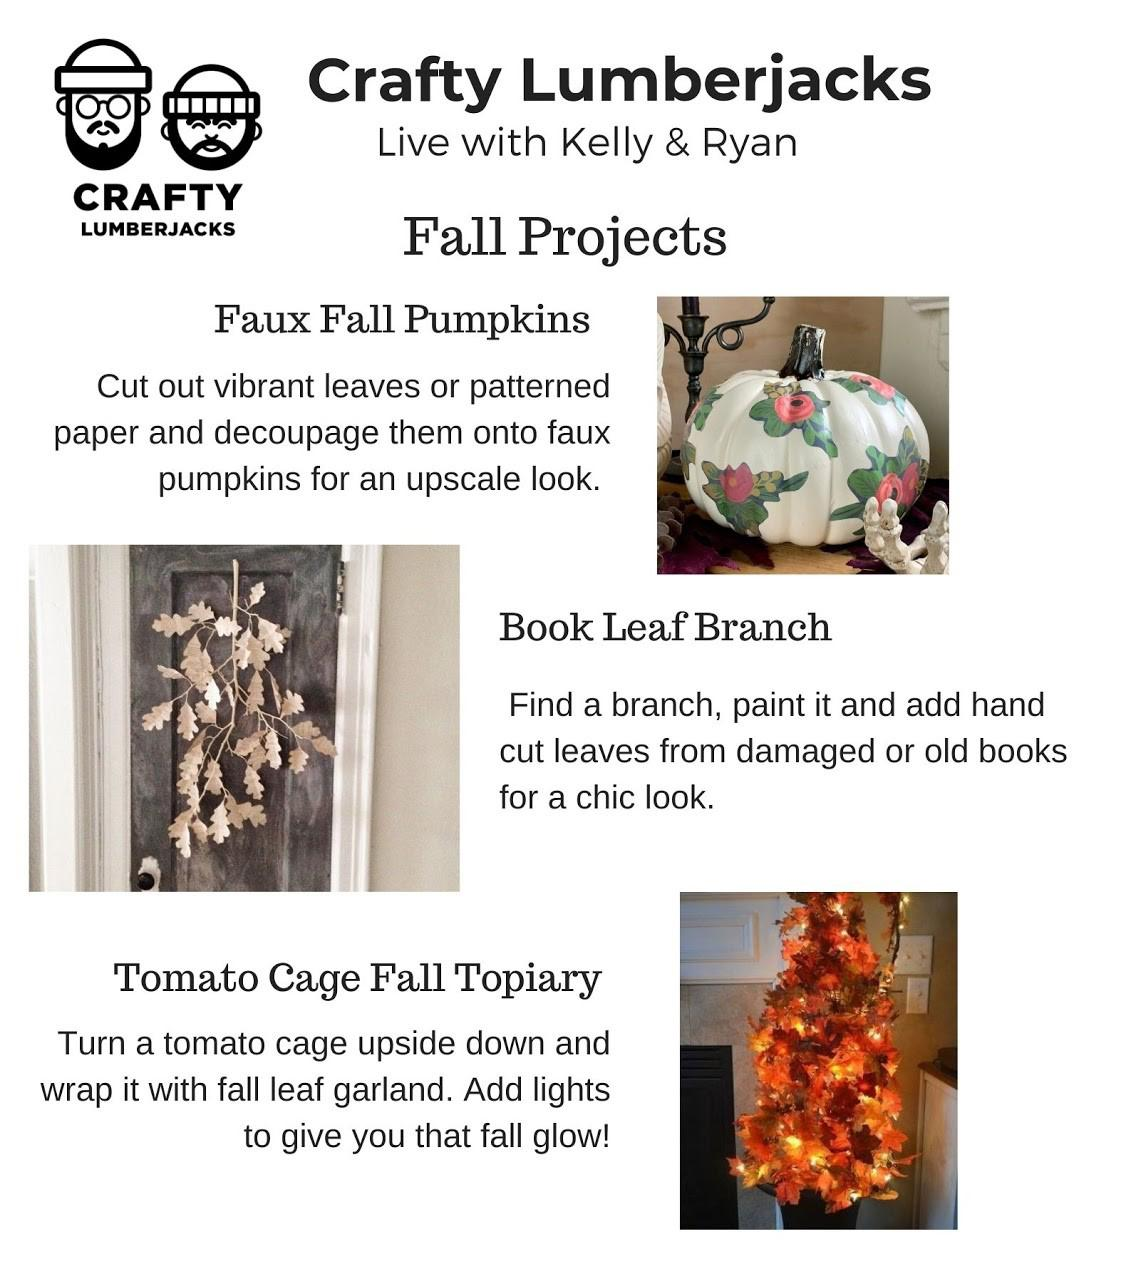 Fun Fall Crafts With The Crafty Lumberjacks Live With Kelly And Ryan